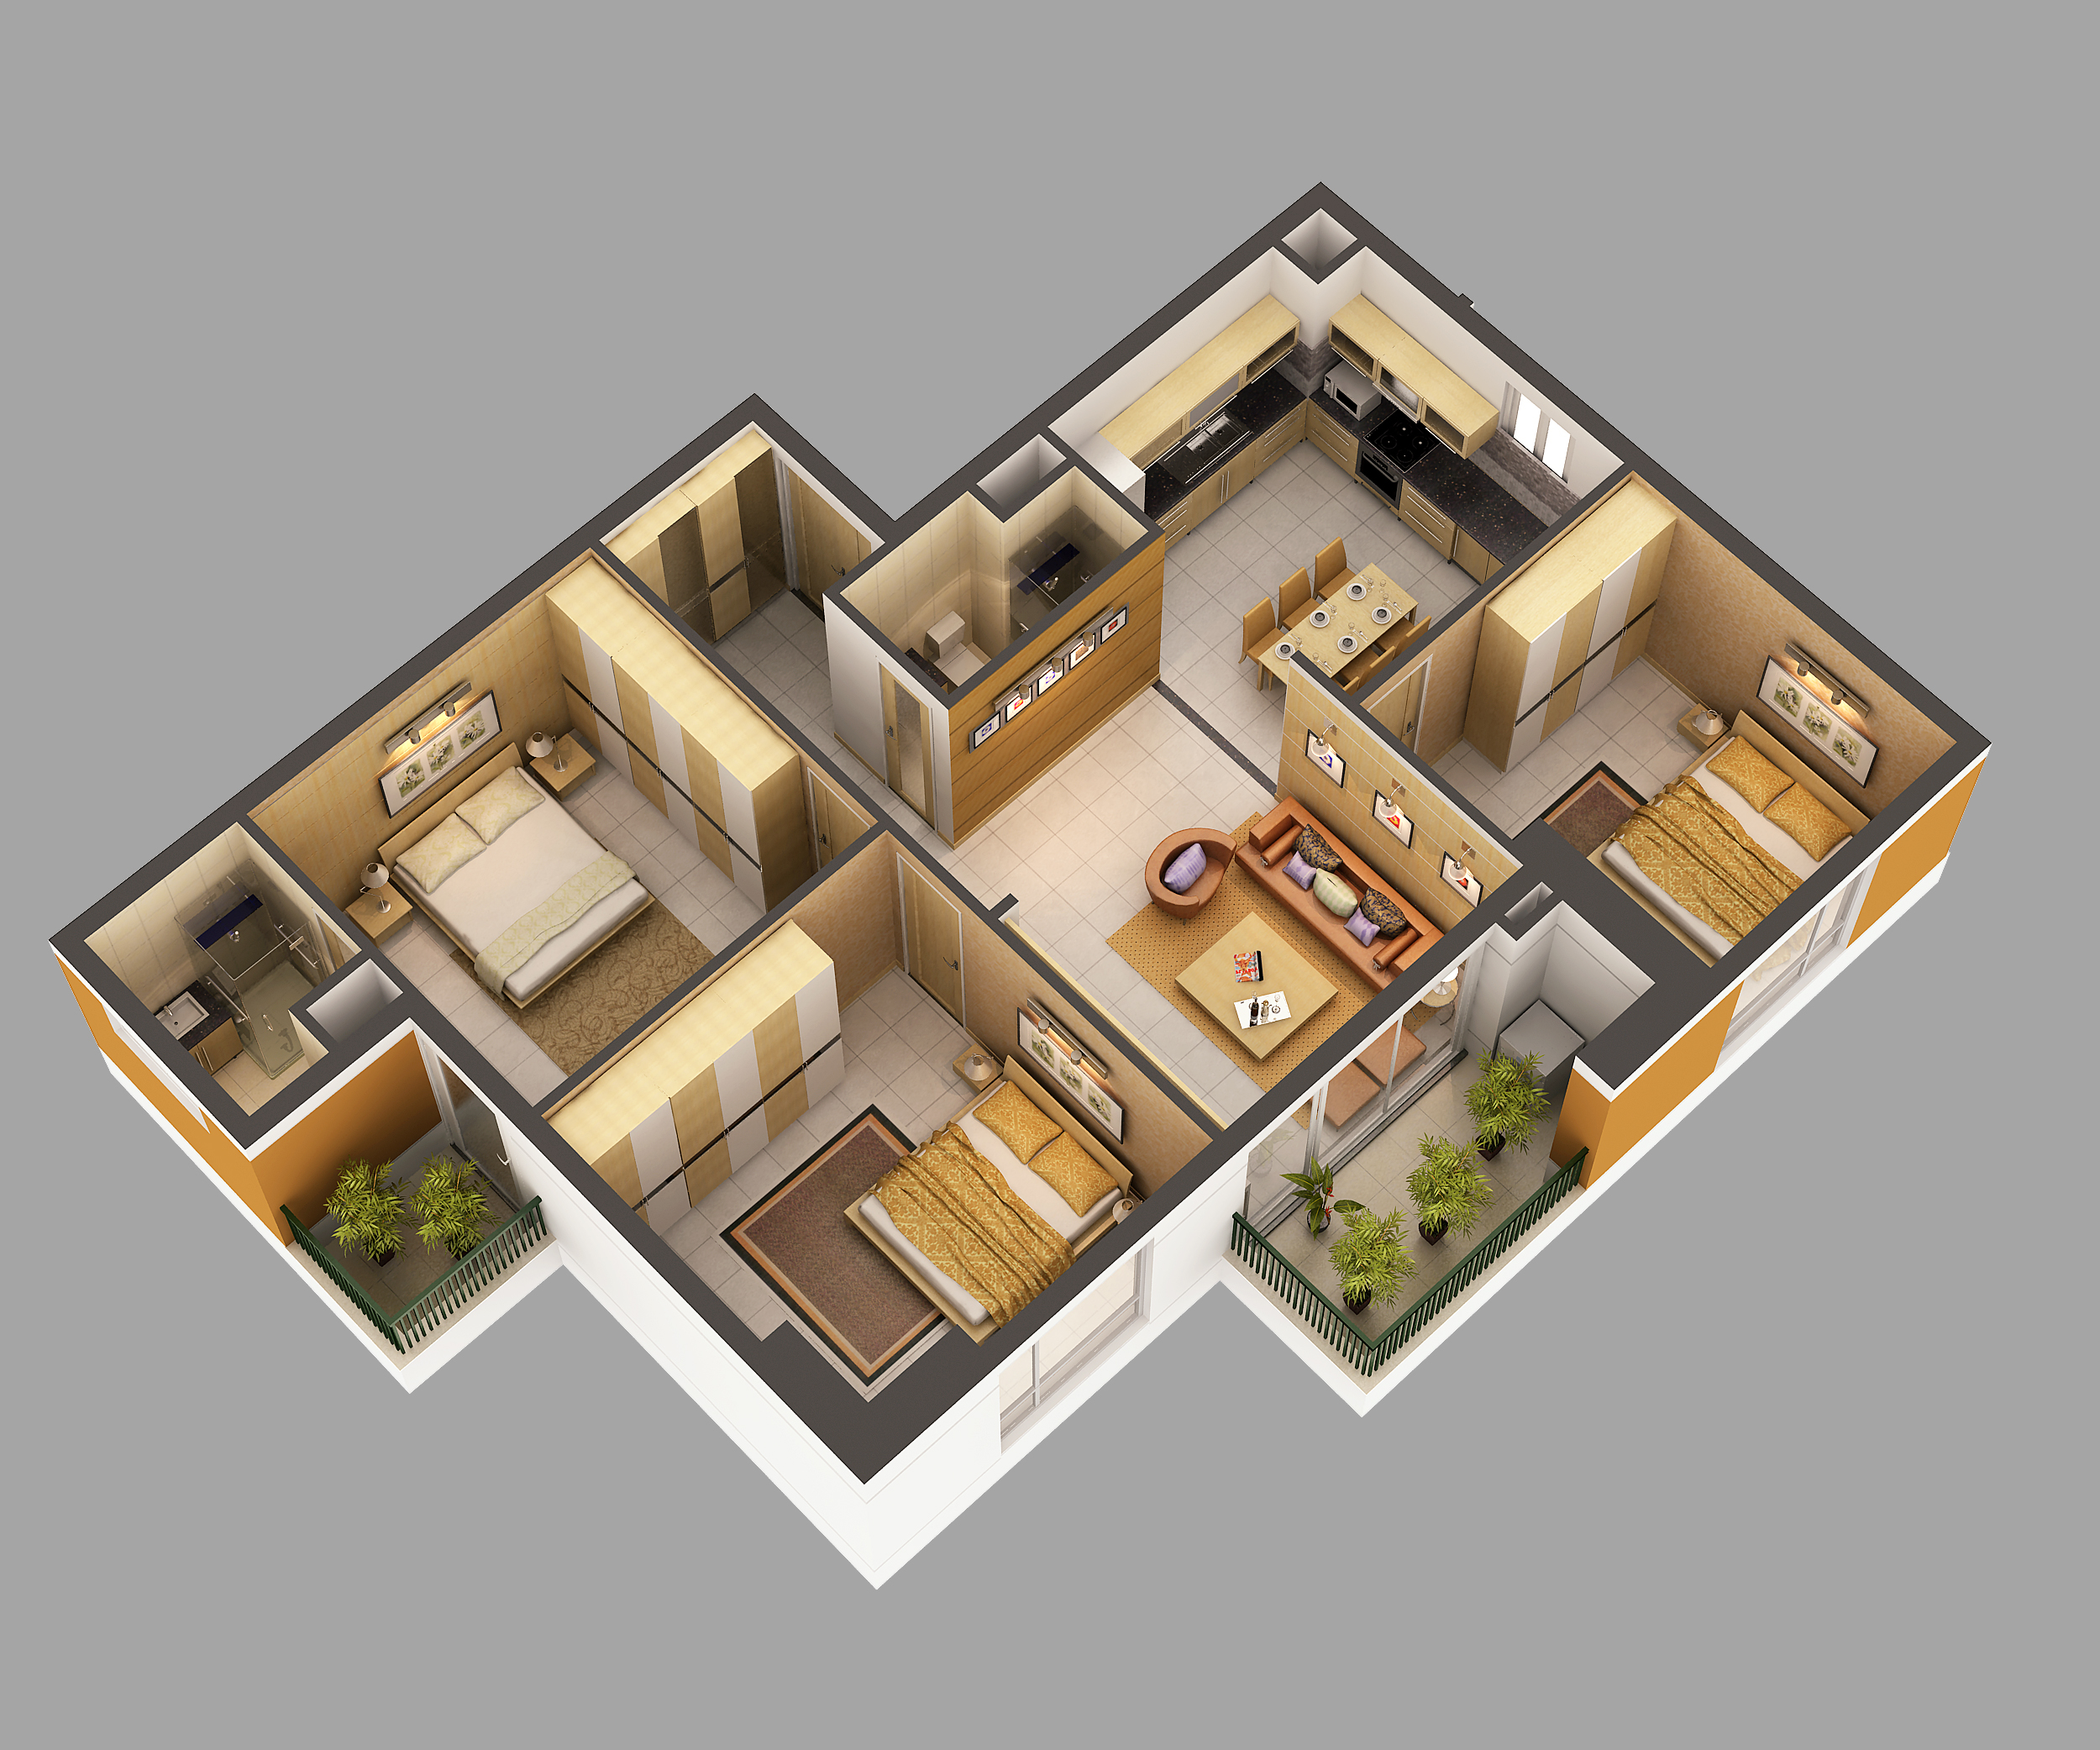 3d model home interior fully furnished 3d model max - Simple and model home interiors ...